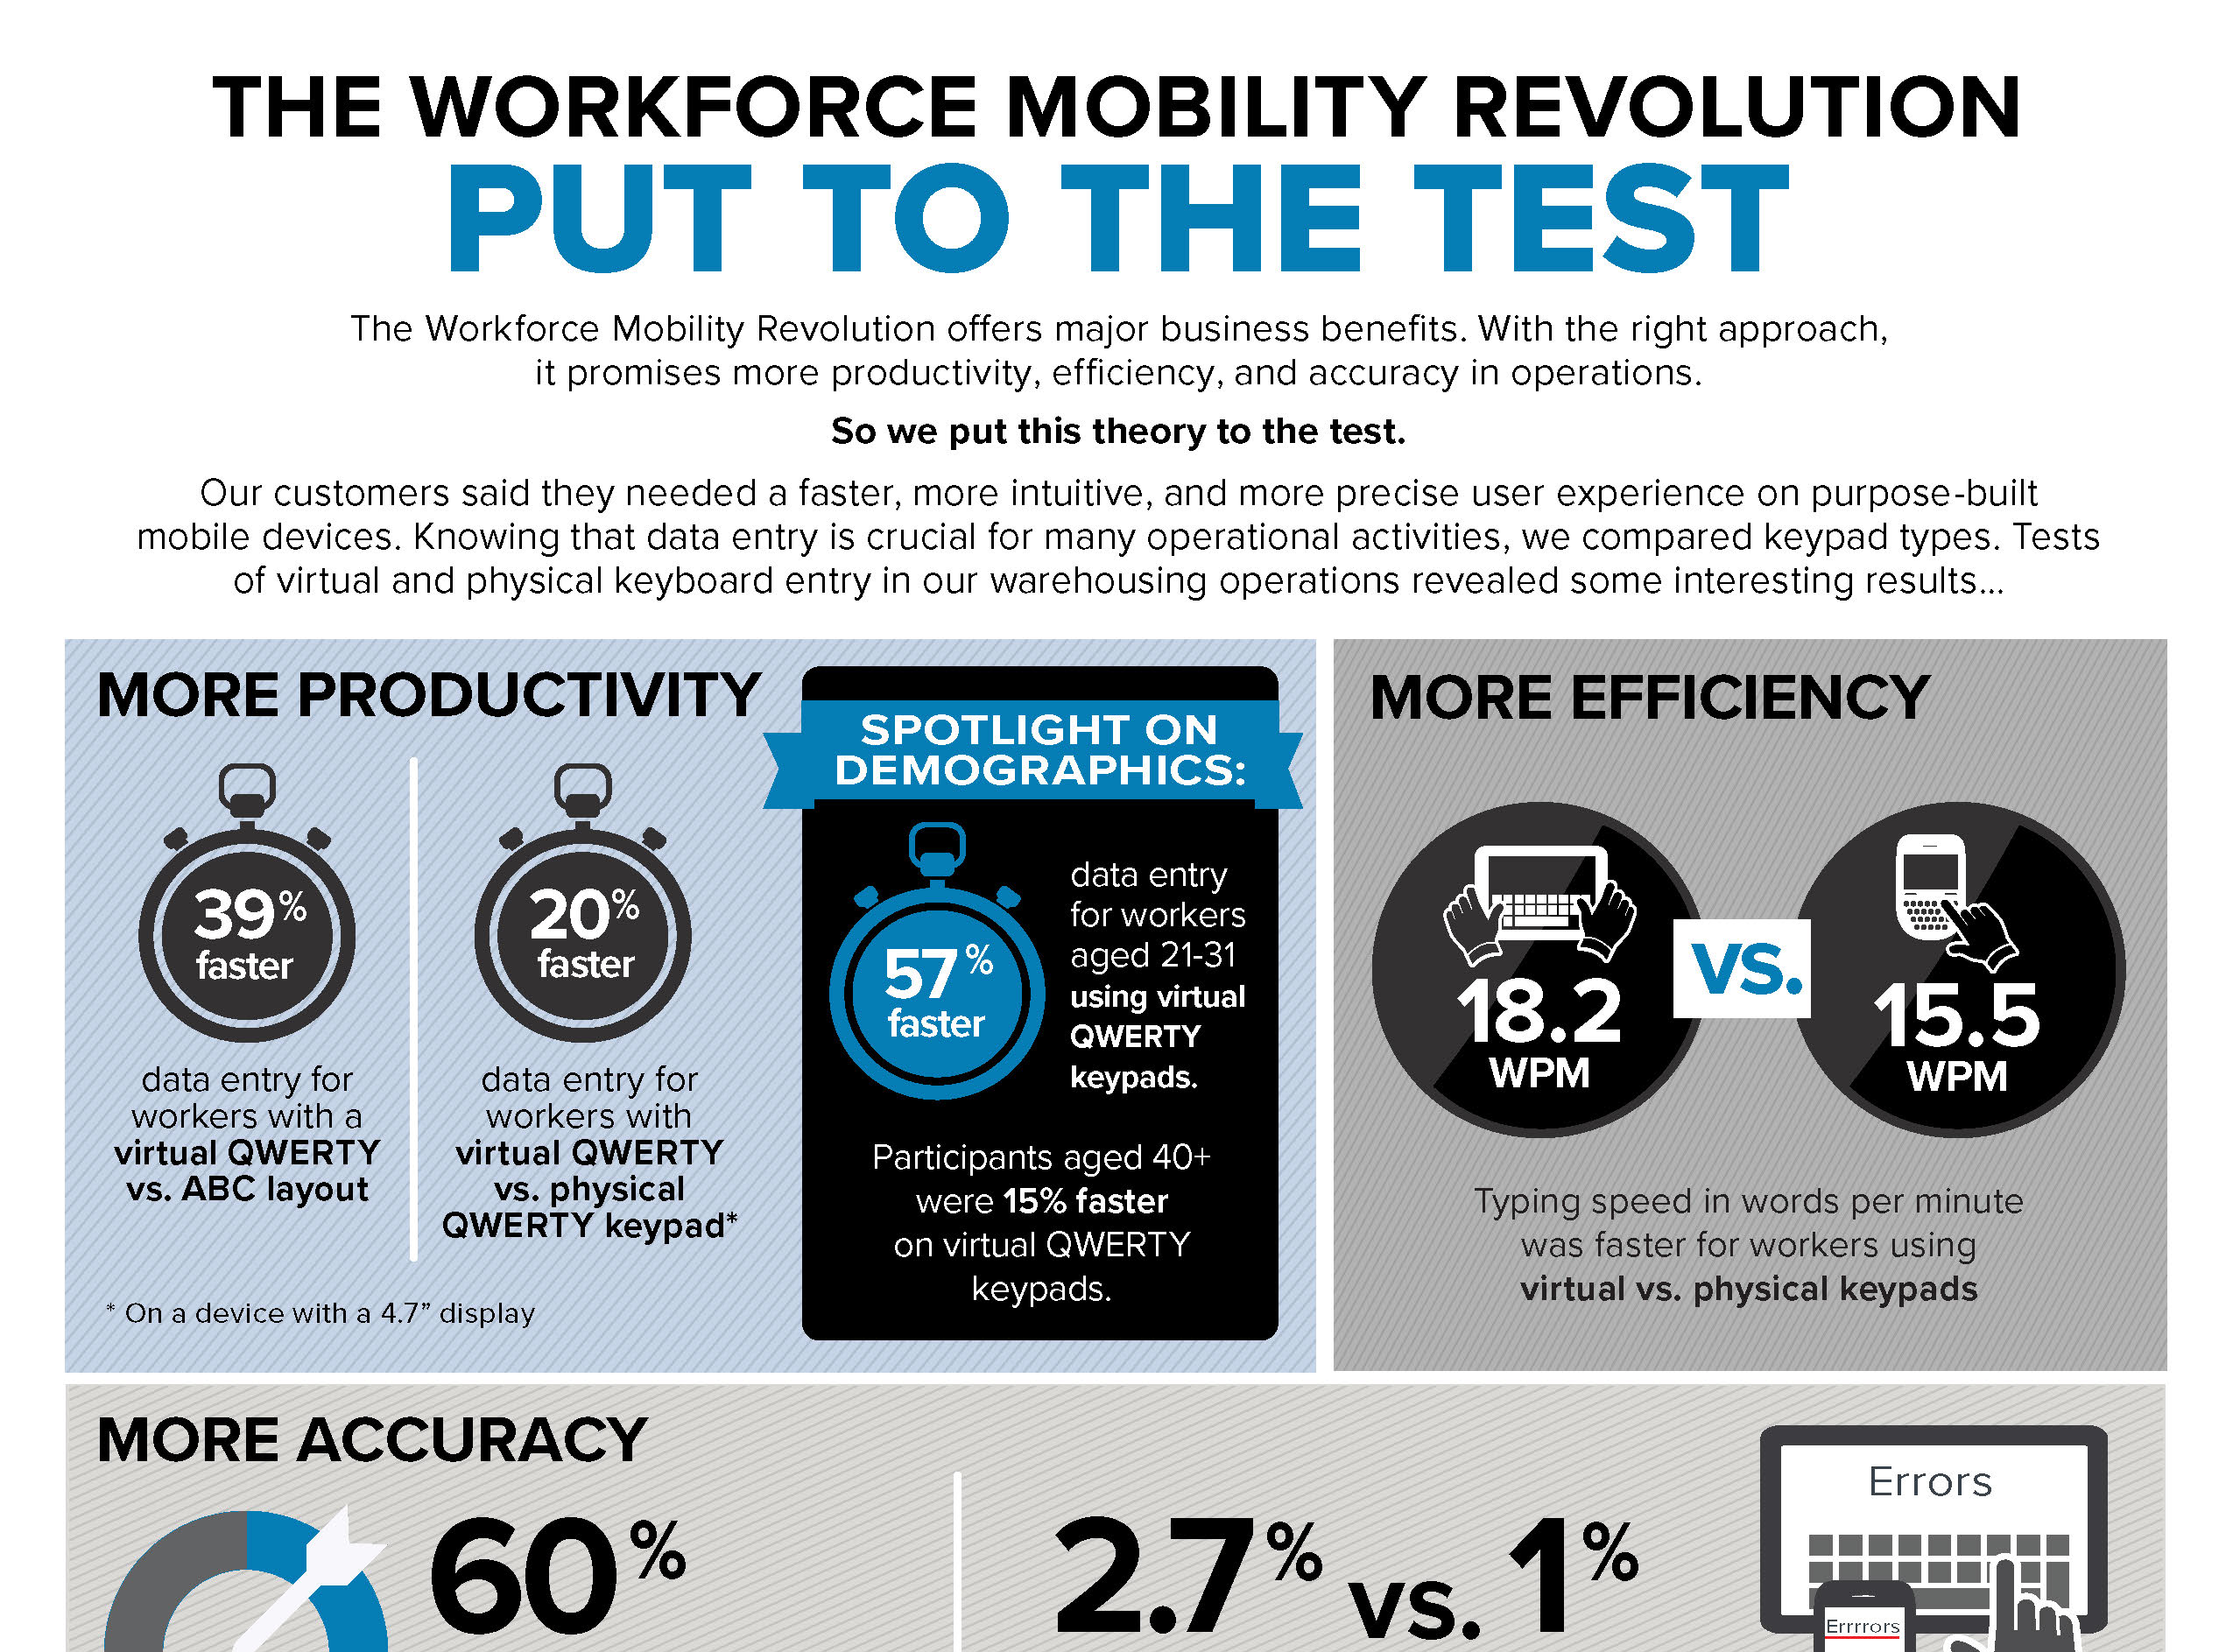 THE WORKFORCE MOBILITY REVOLUTION PUT TO THE TEST